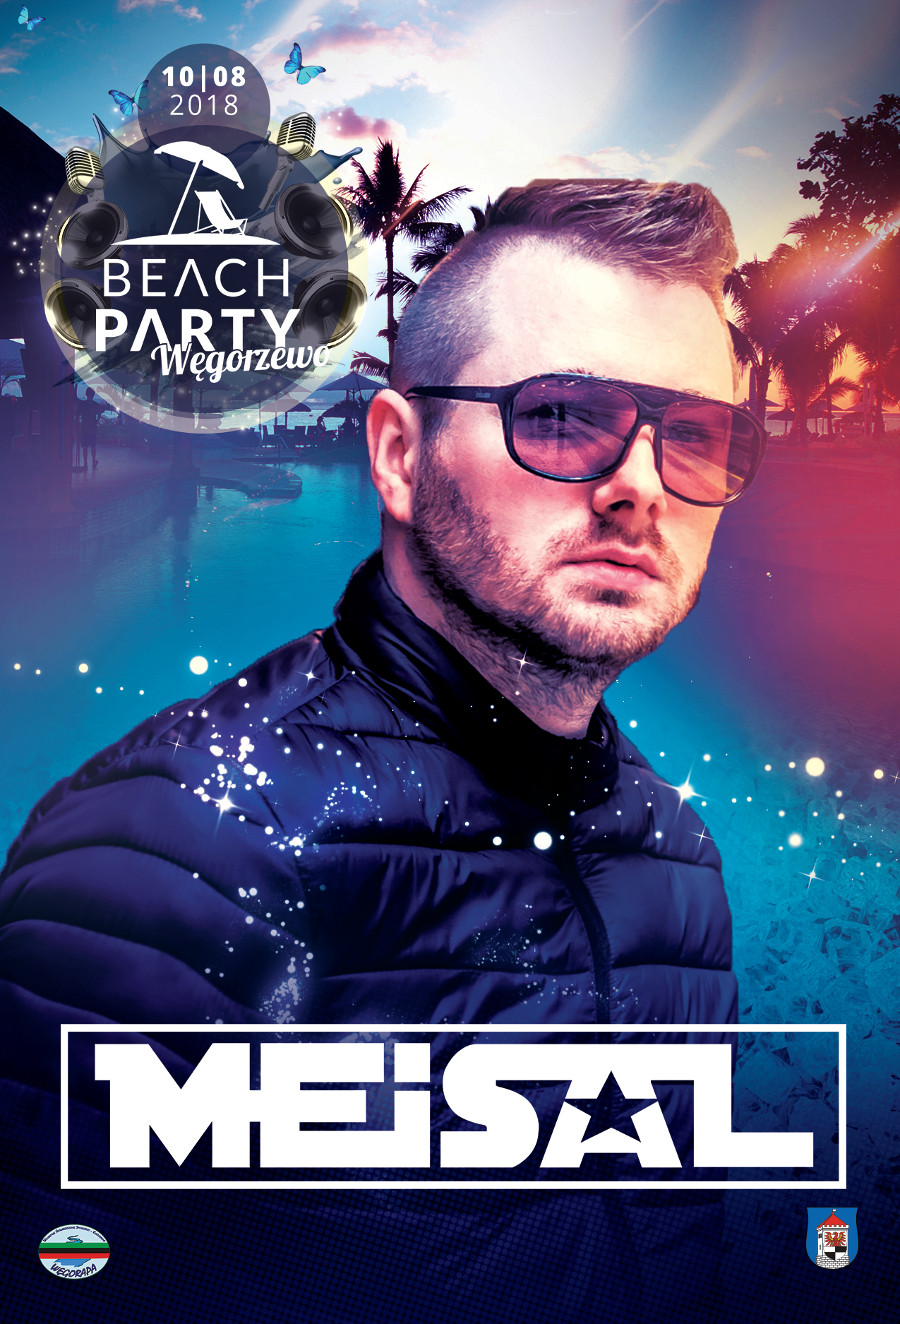 dj meisal sunrise festival beach party 2018 wegorzewo audiolake colors set